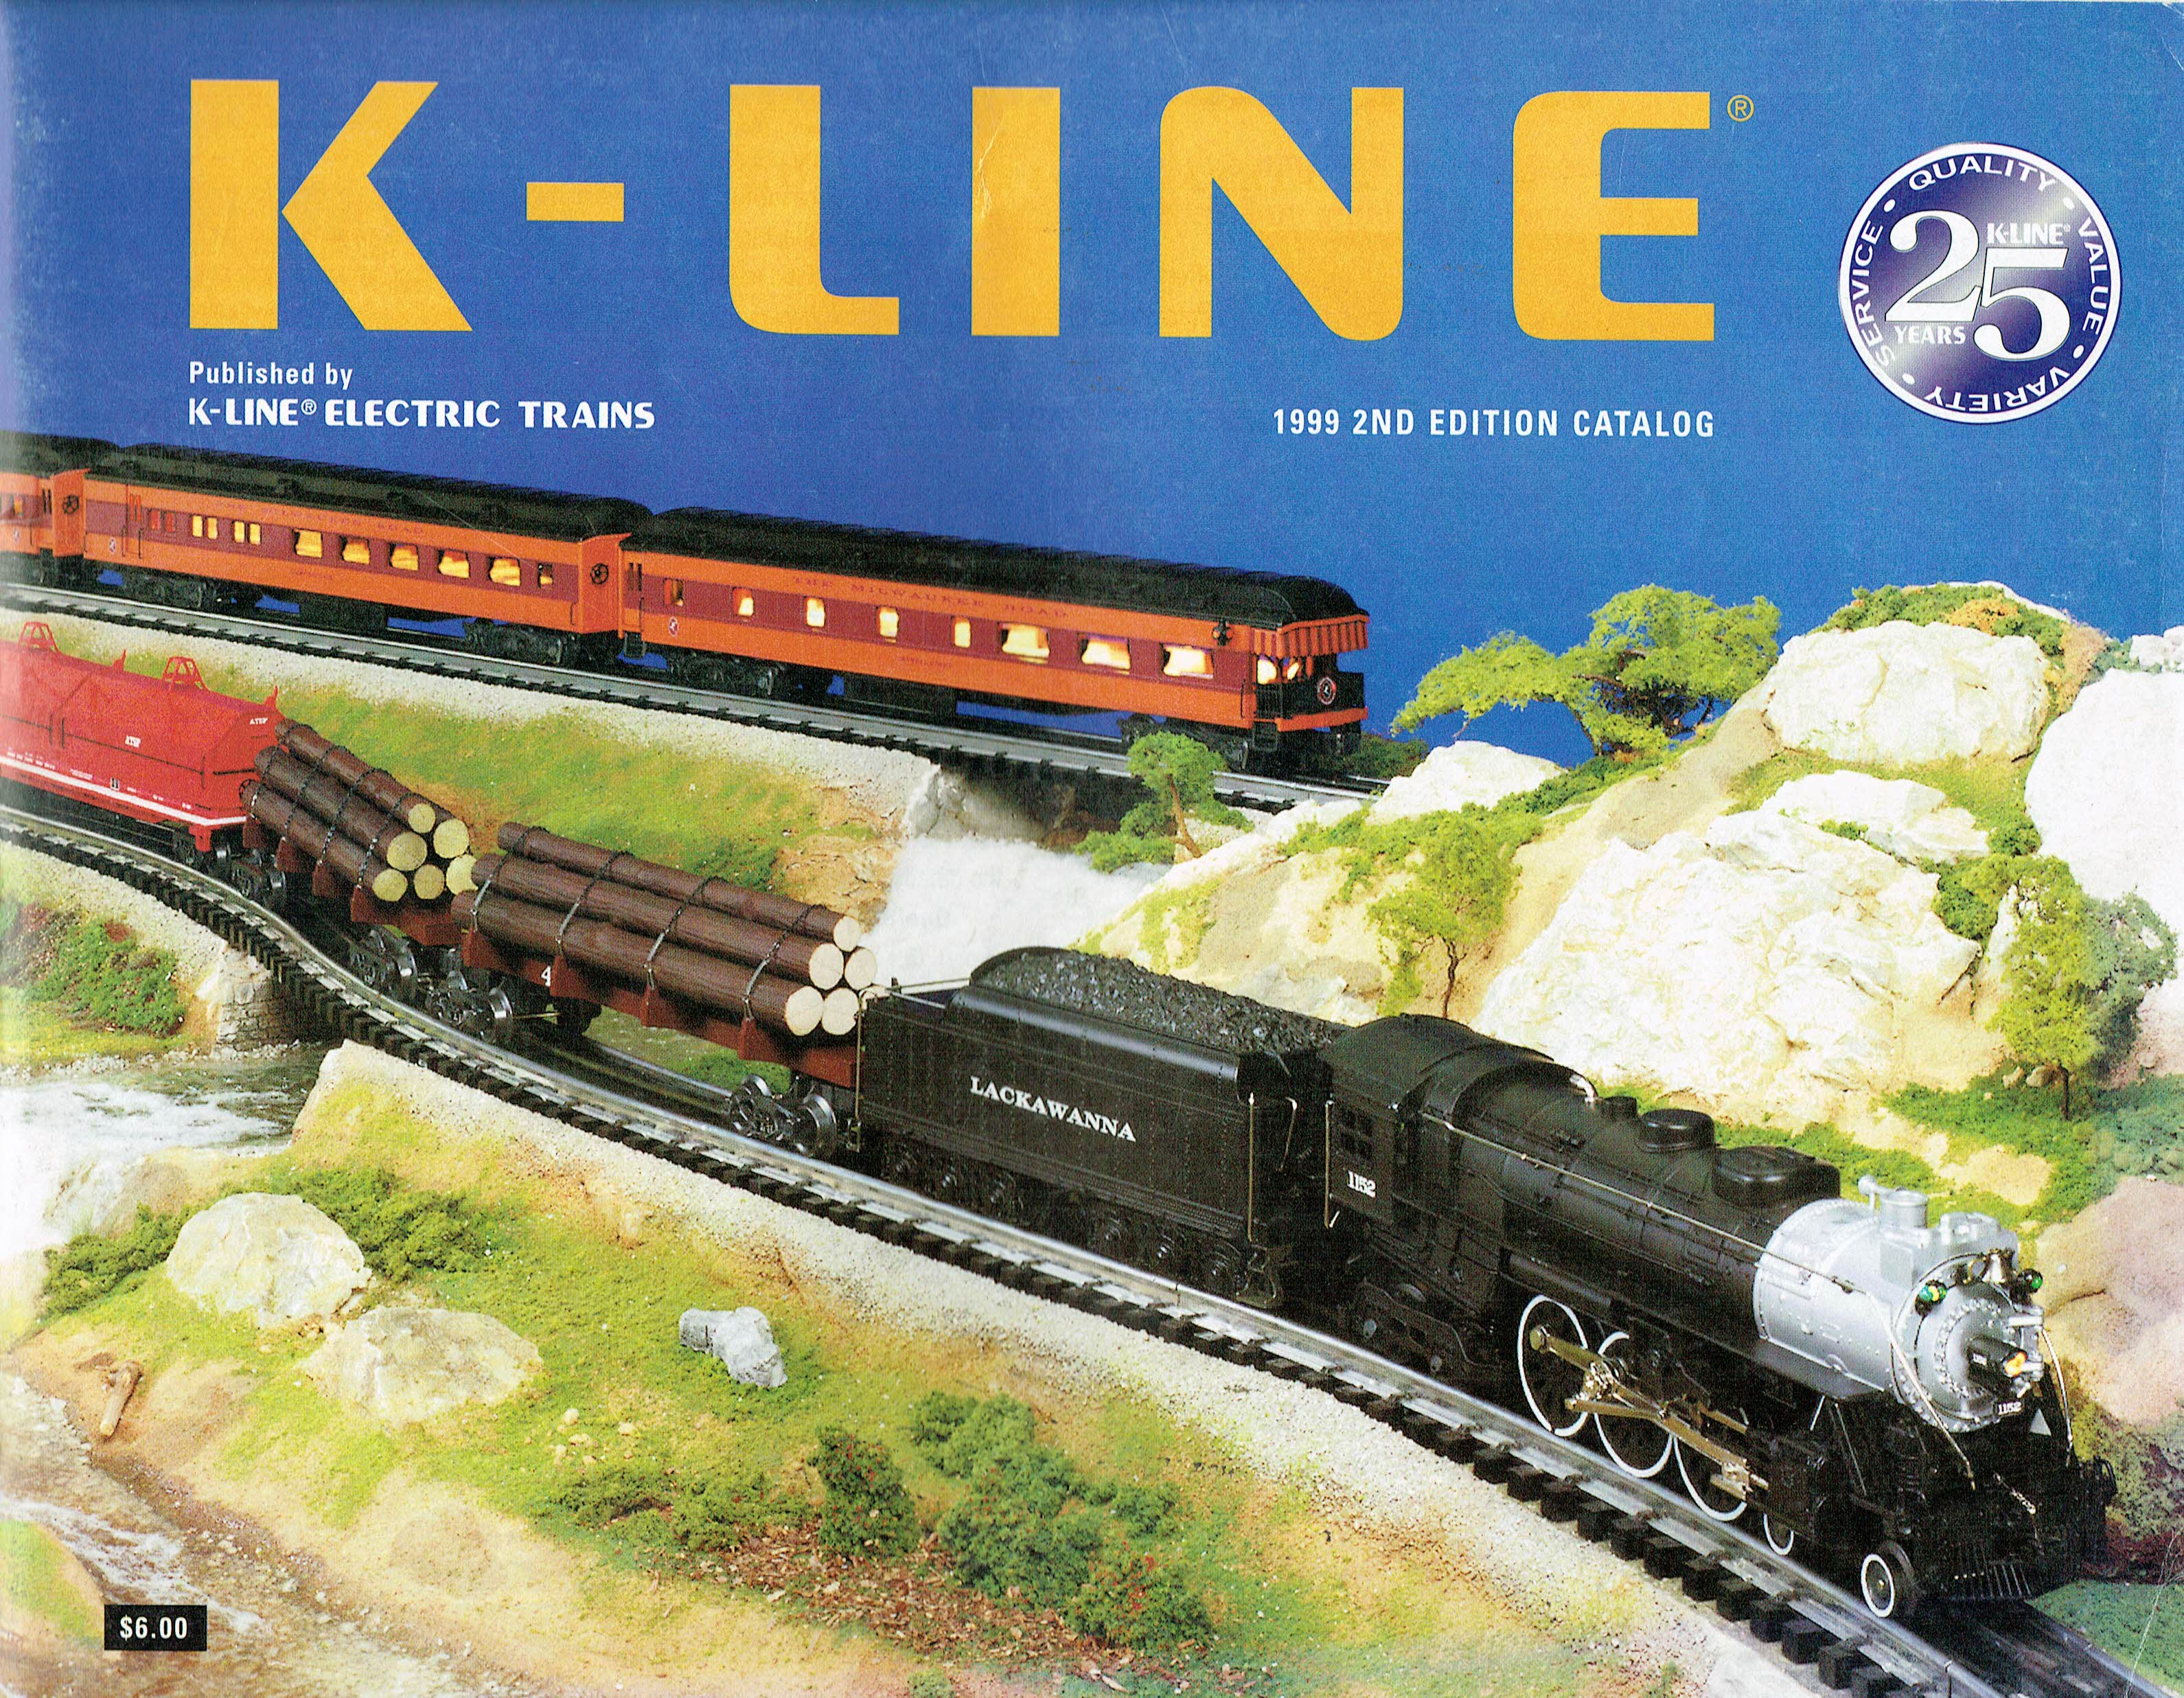 K-Line 1999 2nd Edition Catalog image